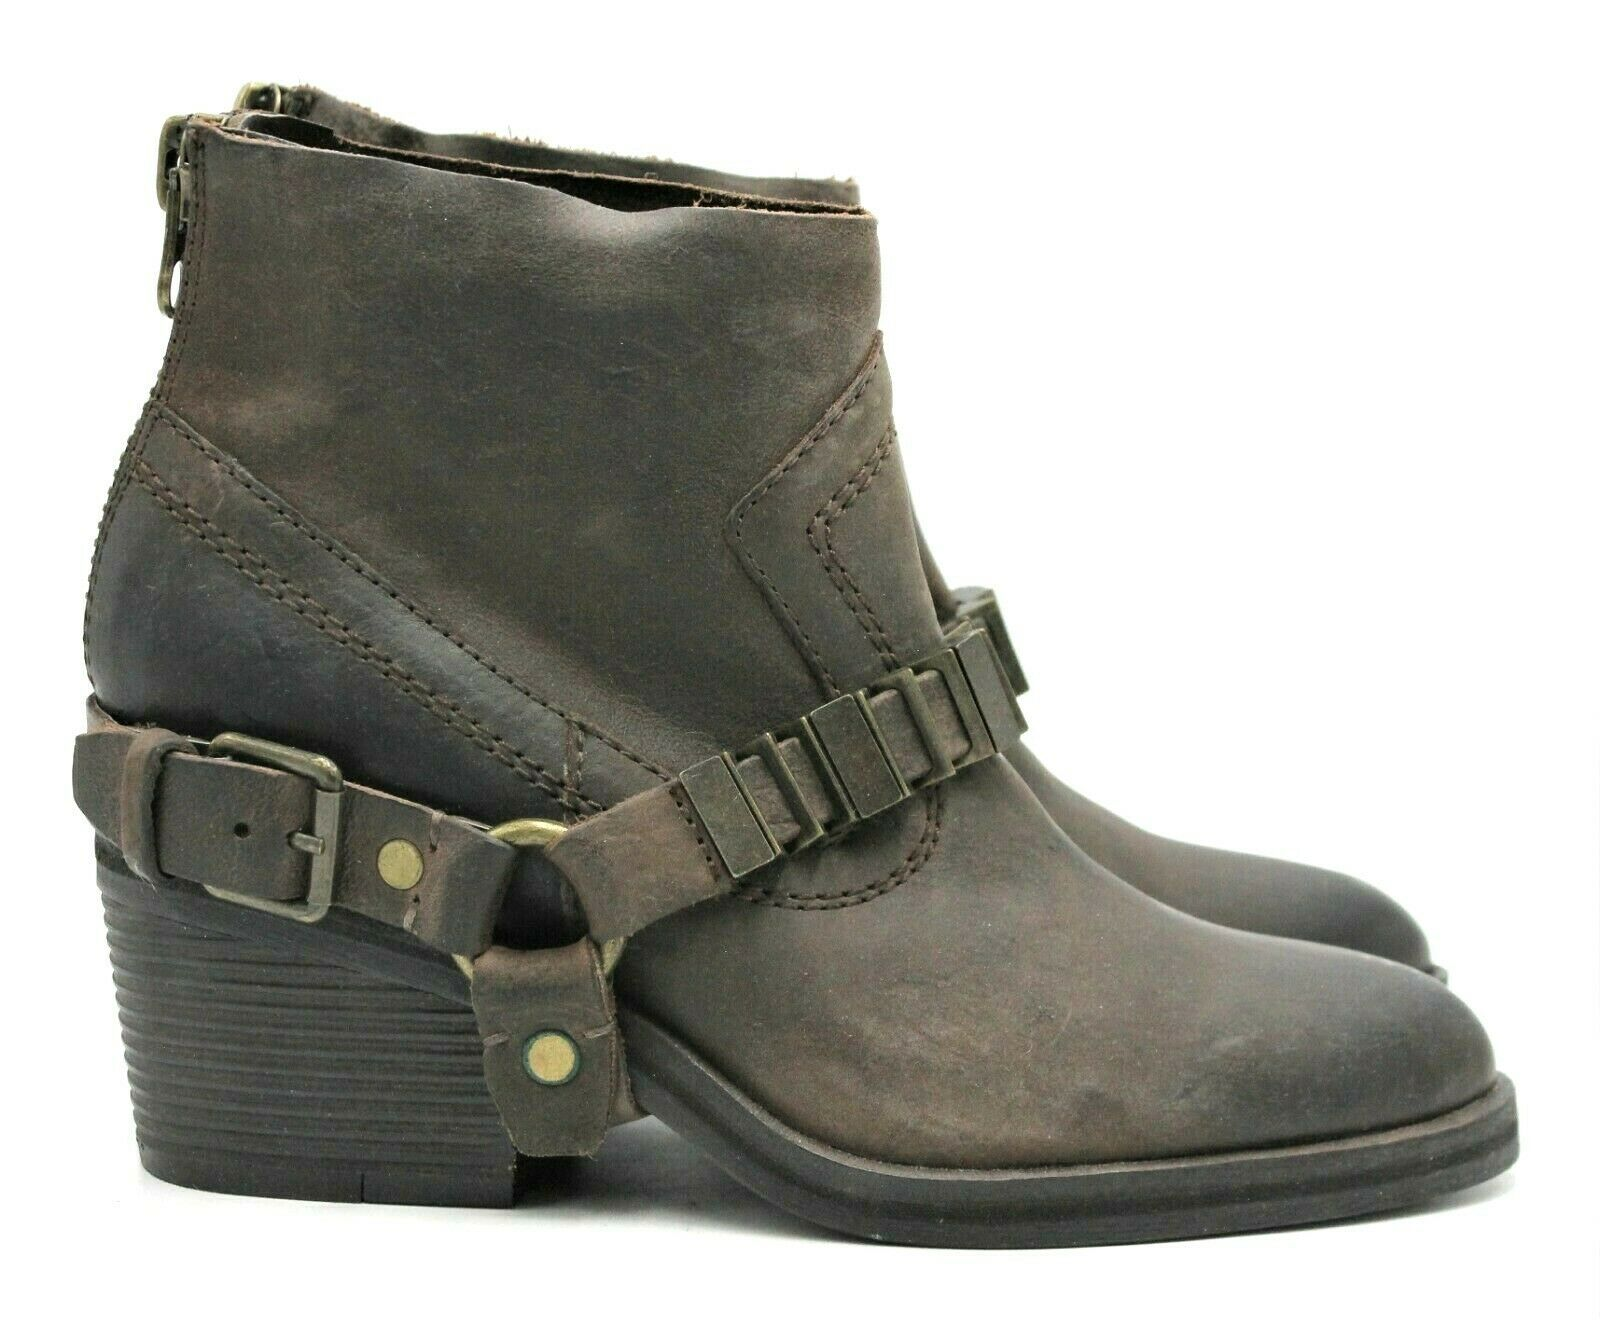 NEW dv by dolce vita Terri Wedge Booties Light Taupe